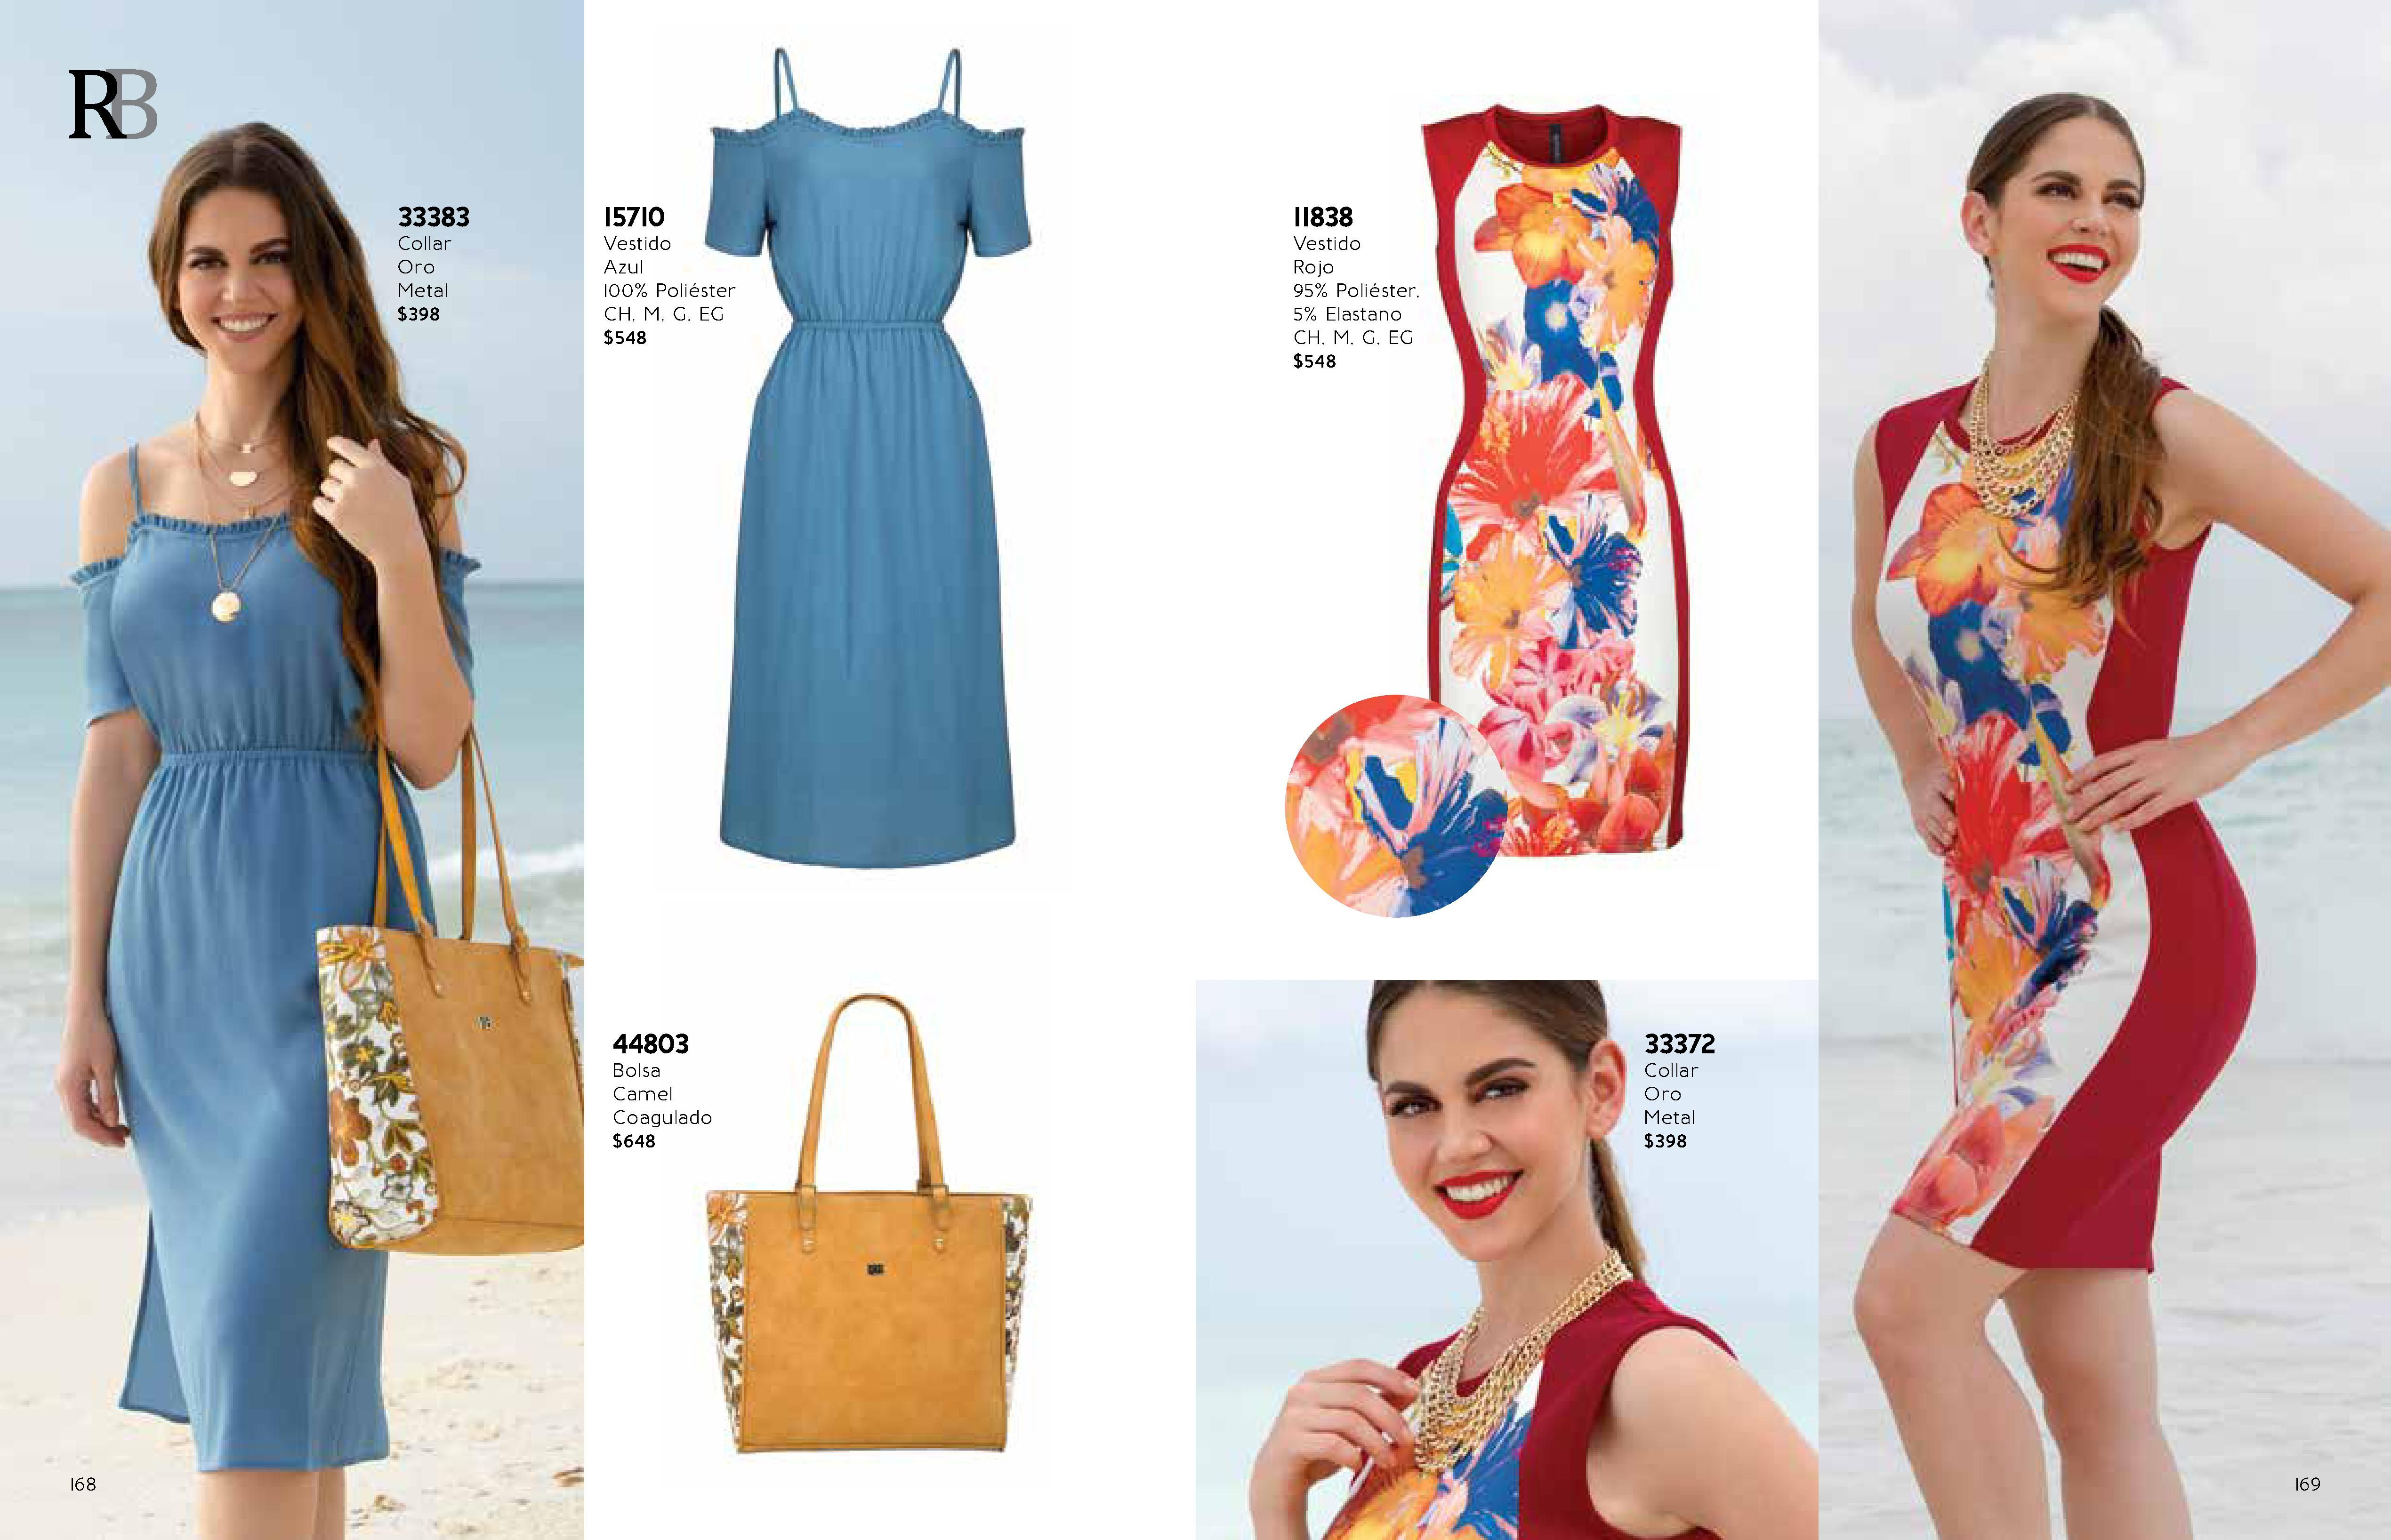 Pin By Rinna Bruni Oficial On Rinna Bruni Libre Pv18 Outfits Fashion Summer Dresses